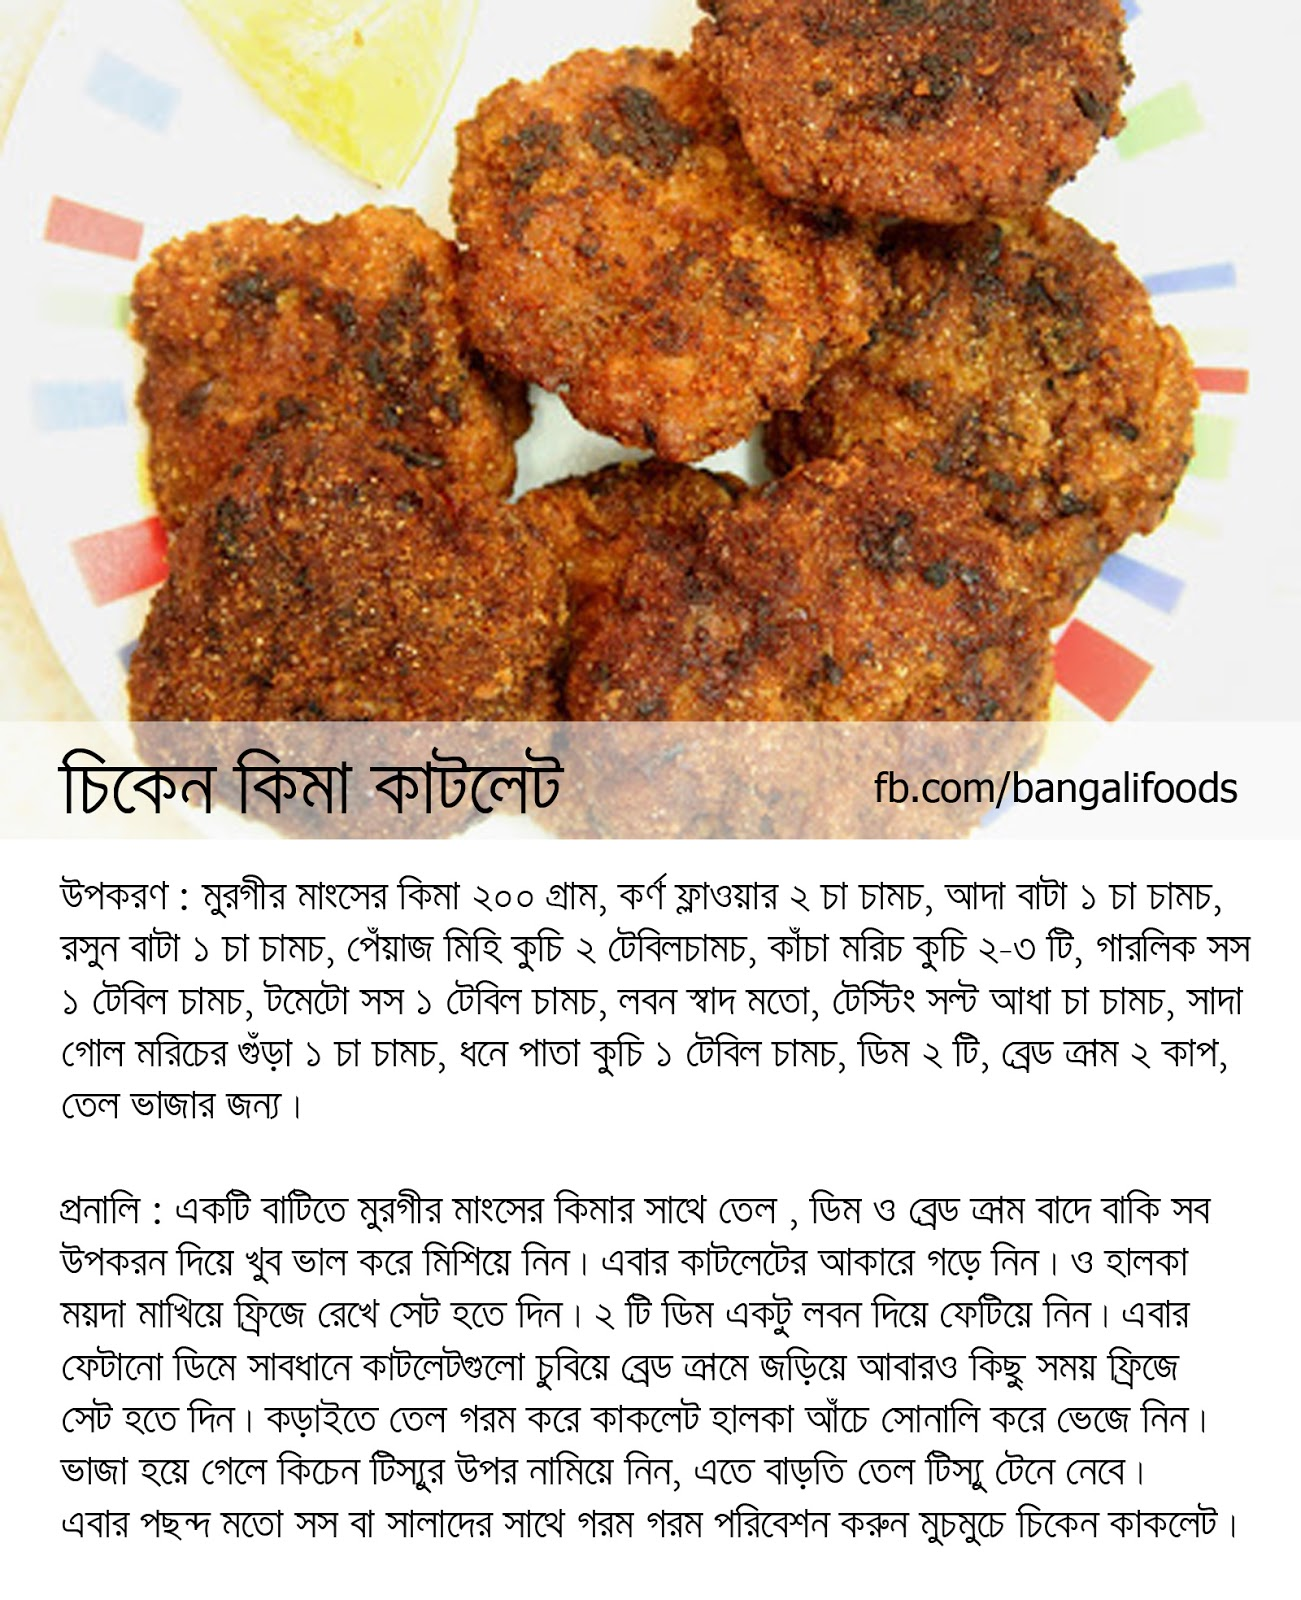 Bangali foods snack food recipes in bengali chicken kima cutlet recipe minced chicken cutlet forumfinder Choice Image